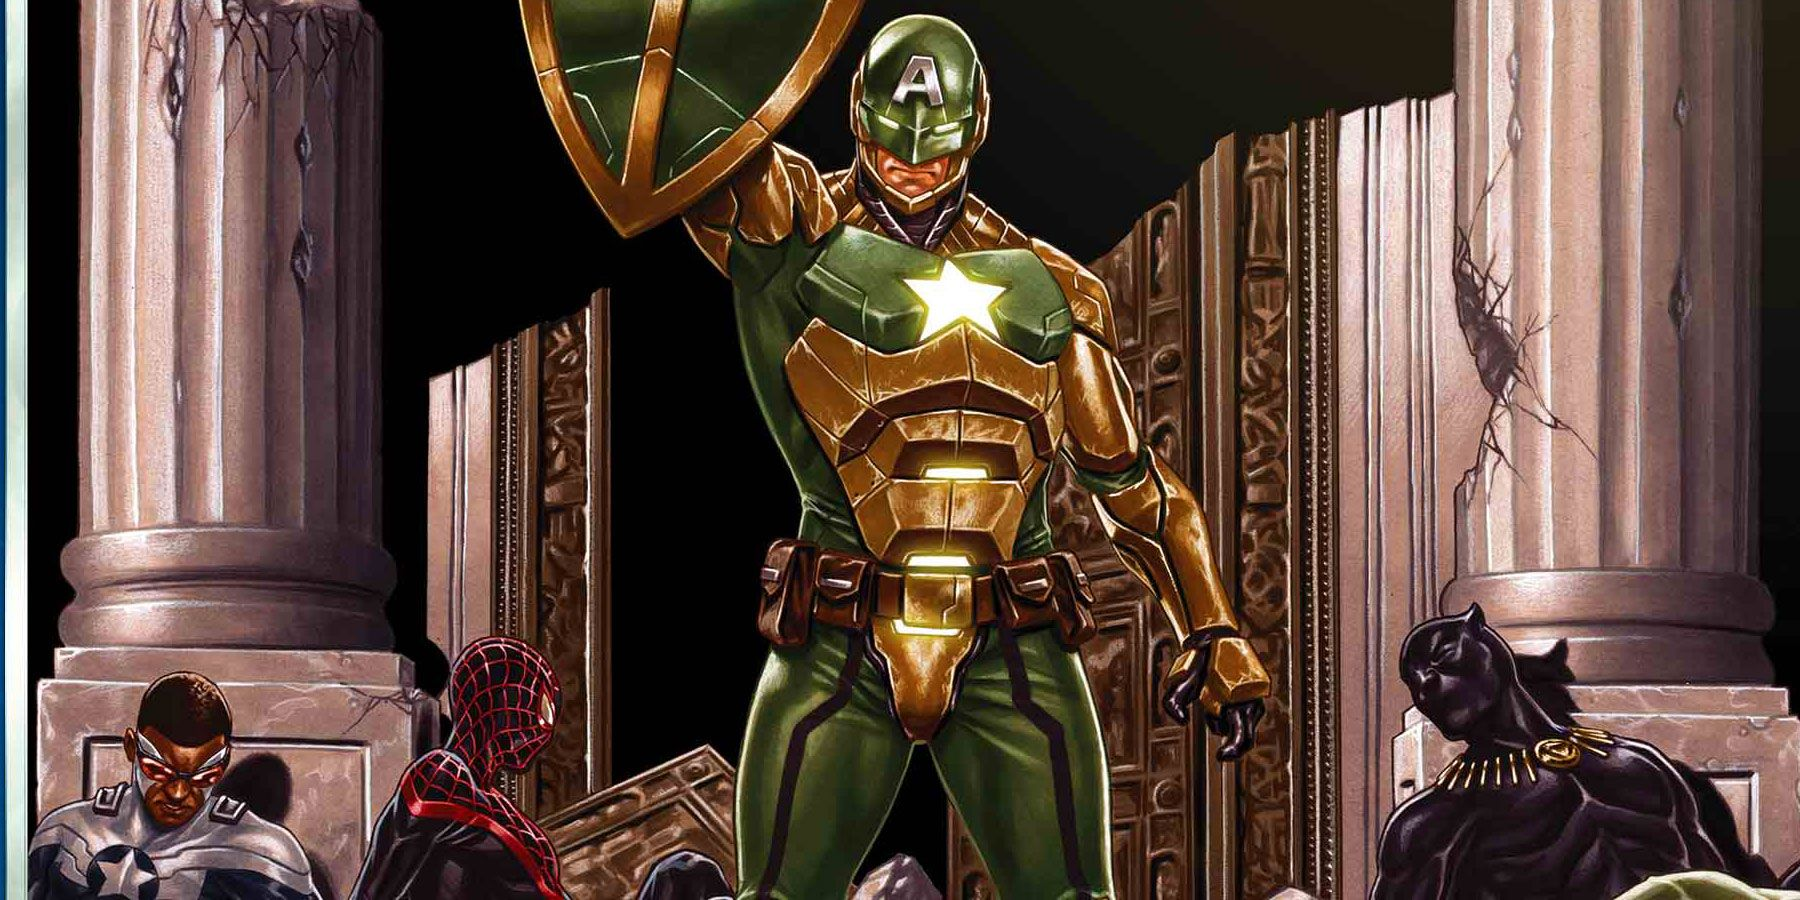 Marvel Just Introduced Hydra's Version of Captain America | CBR